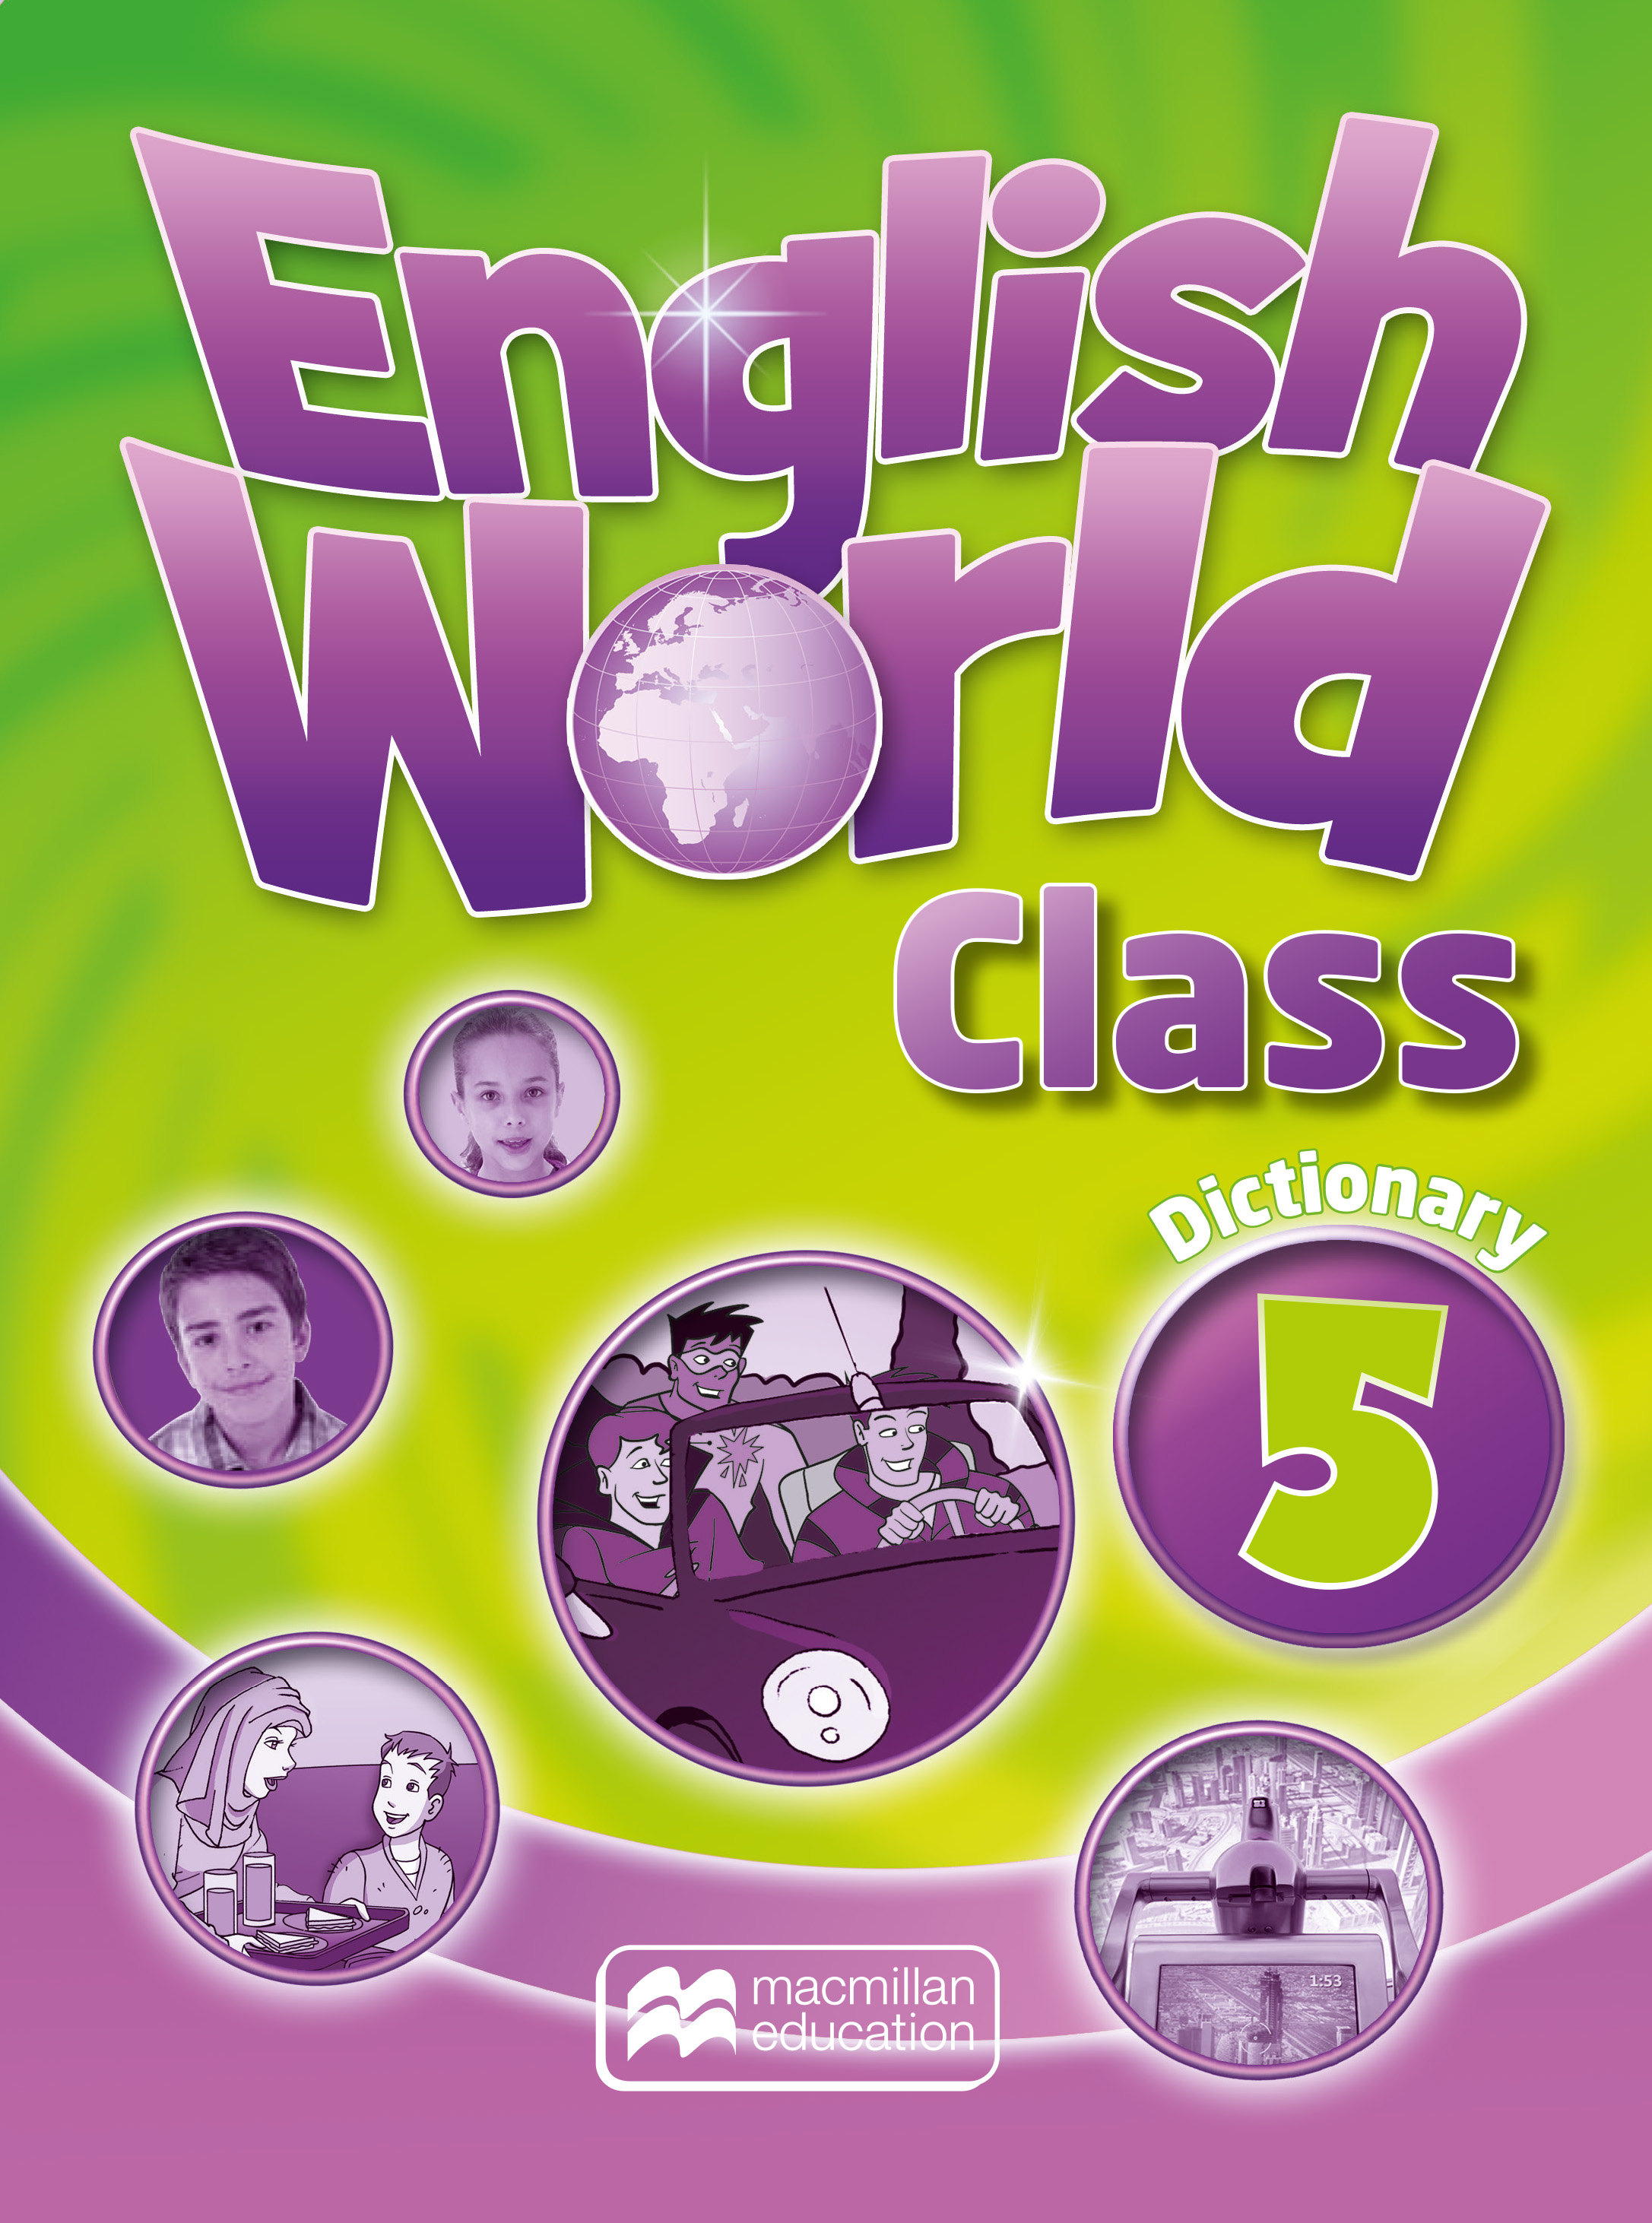 English World Class Level 5 Dictionary